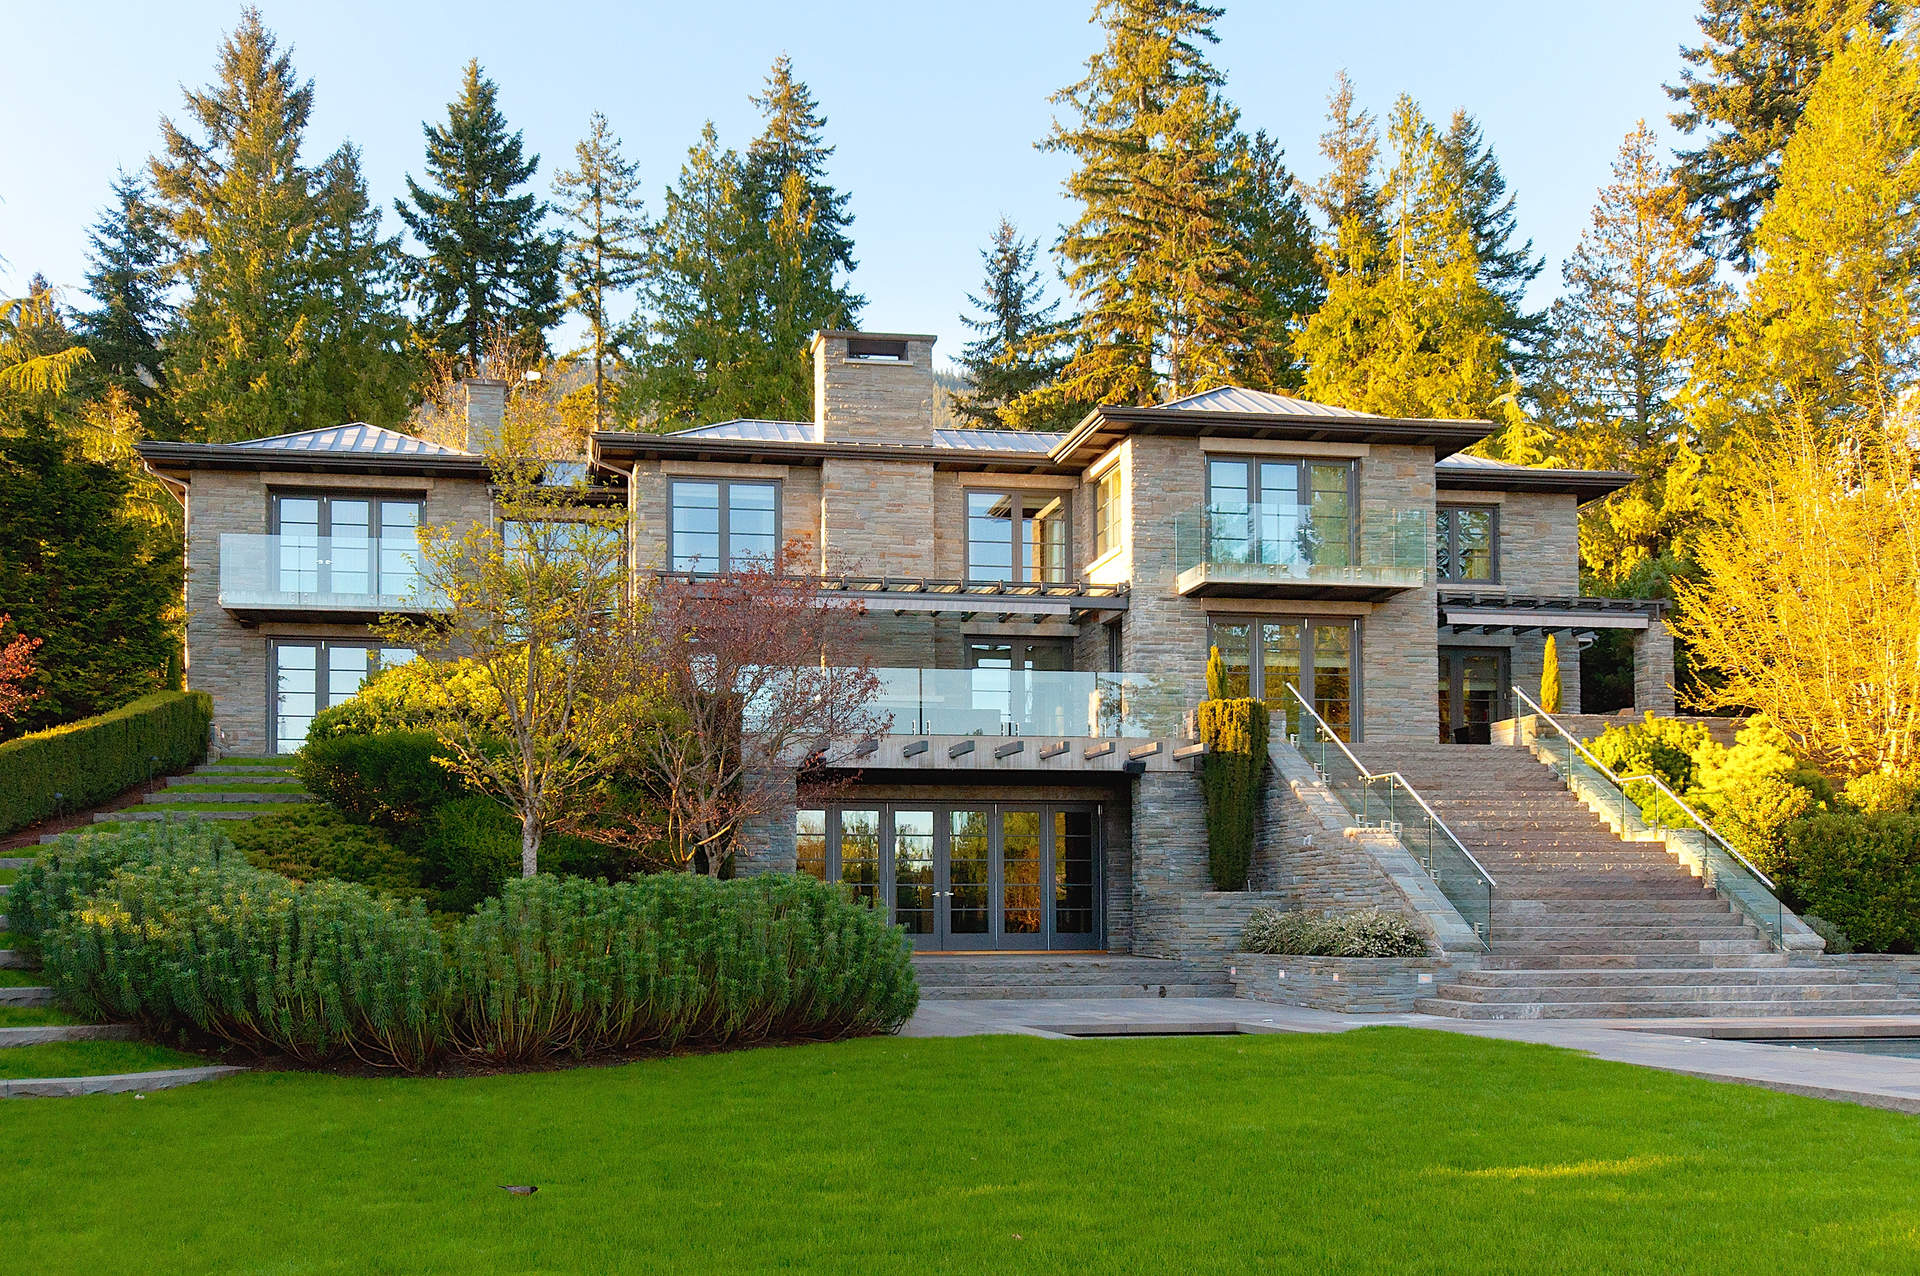 World Class Altamont Residence on .92 Acre with Ocean Views!